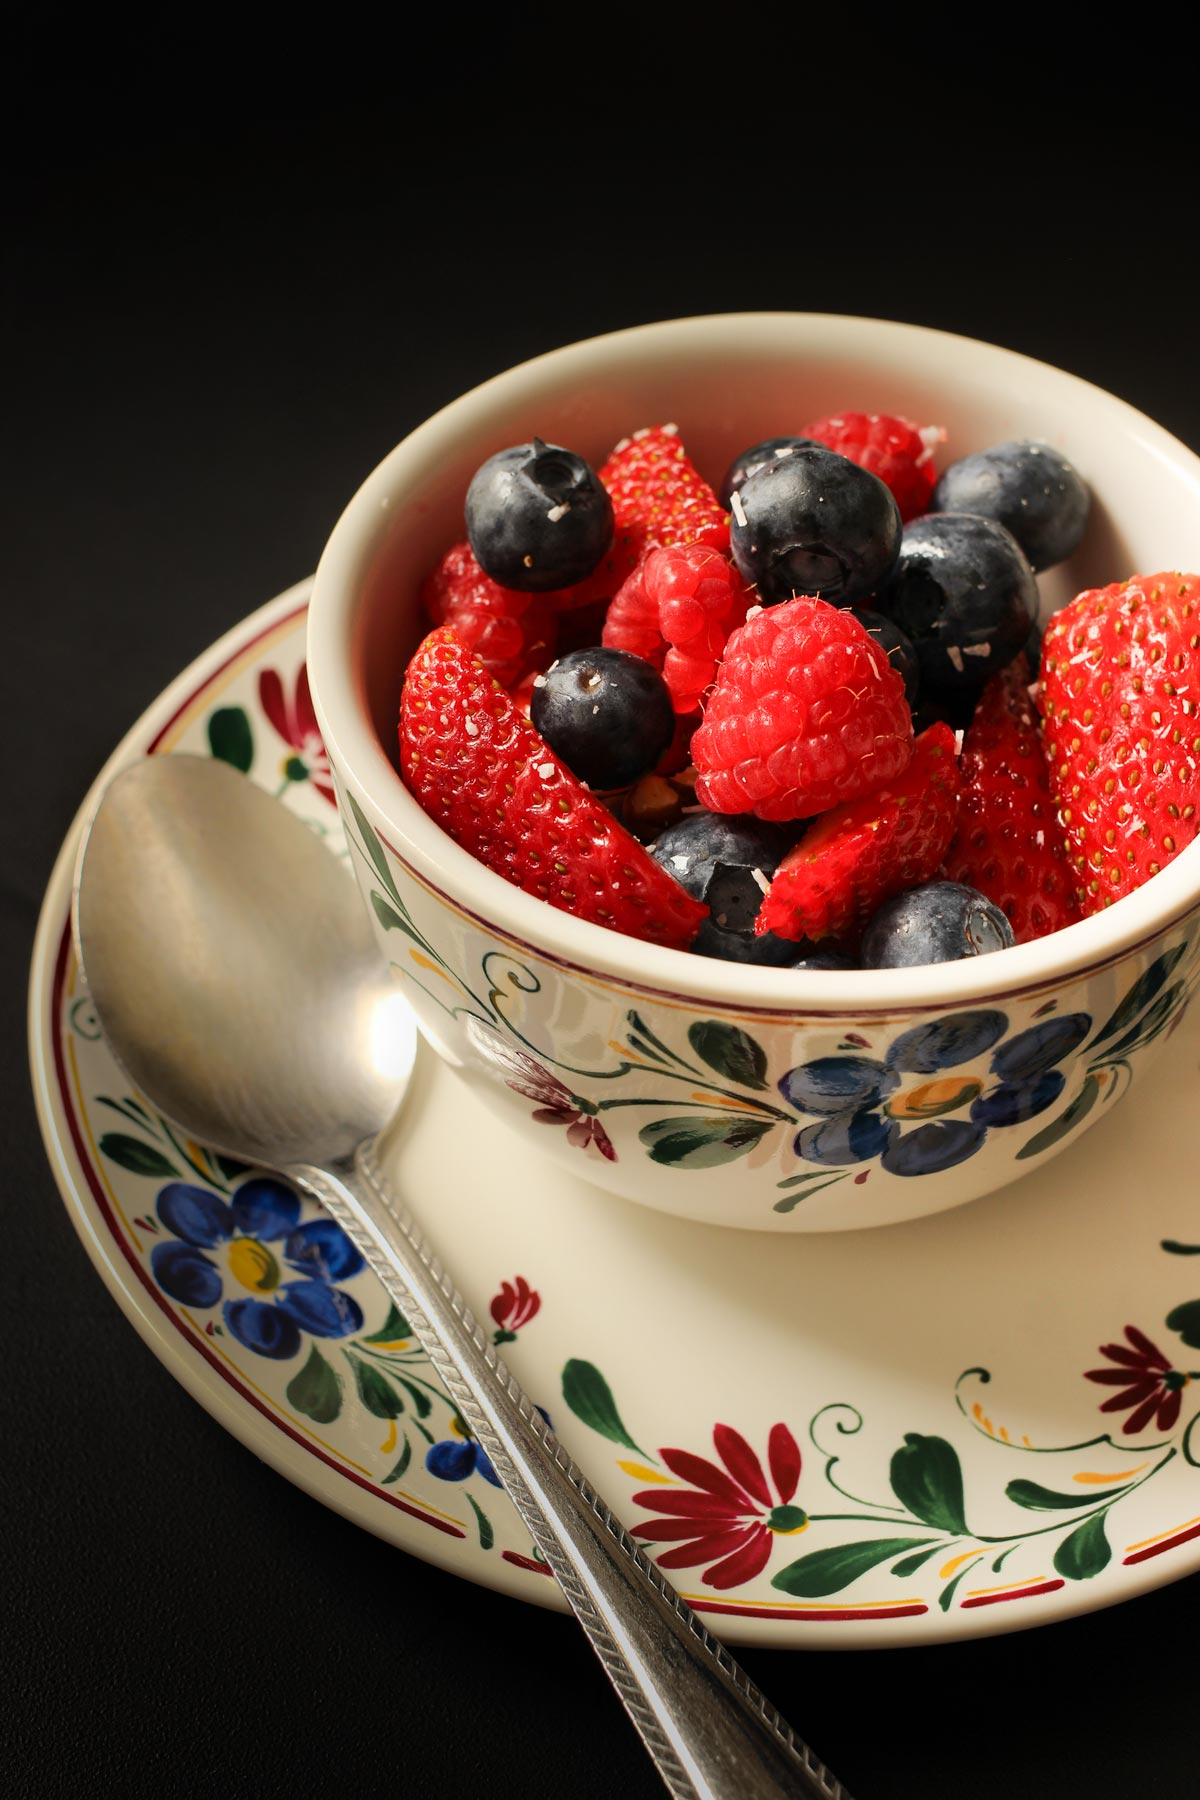 berry salad in a teacup with a spoon on the saucer.